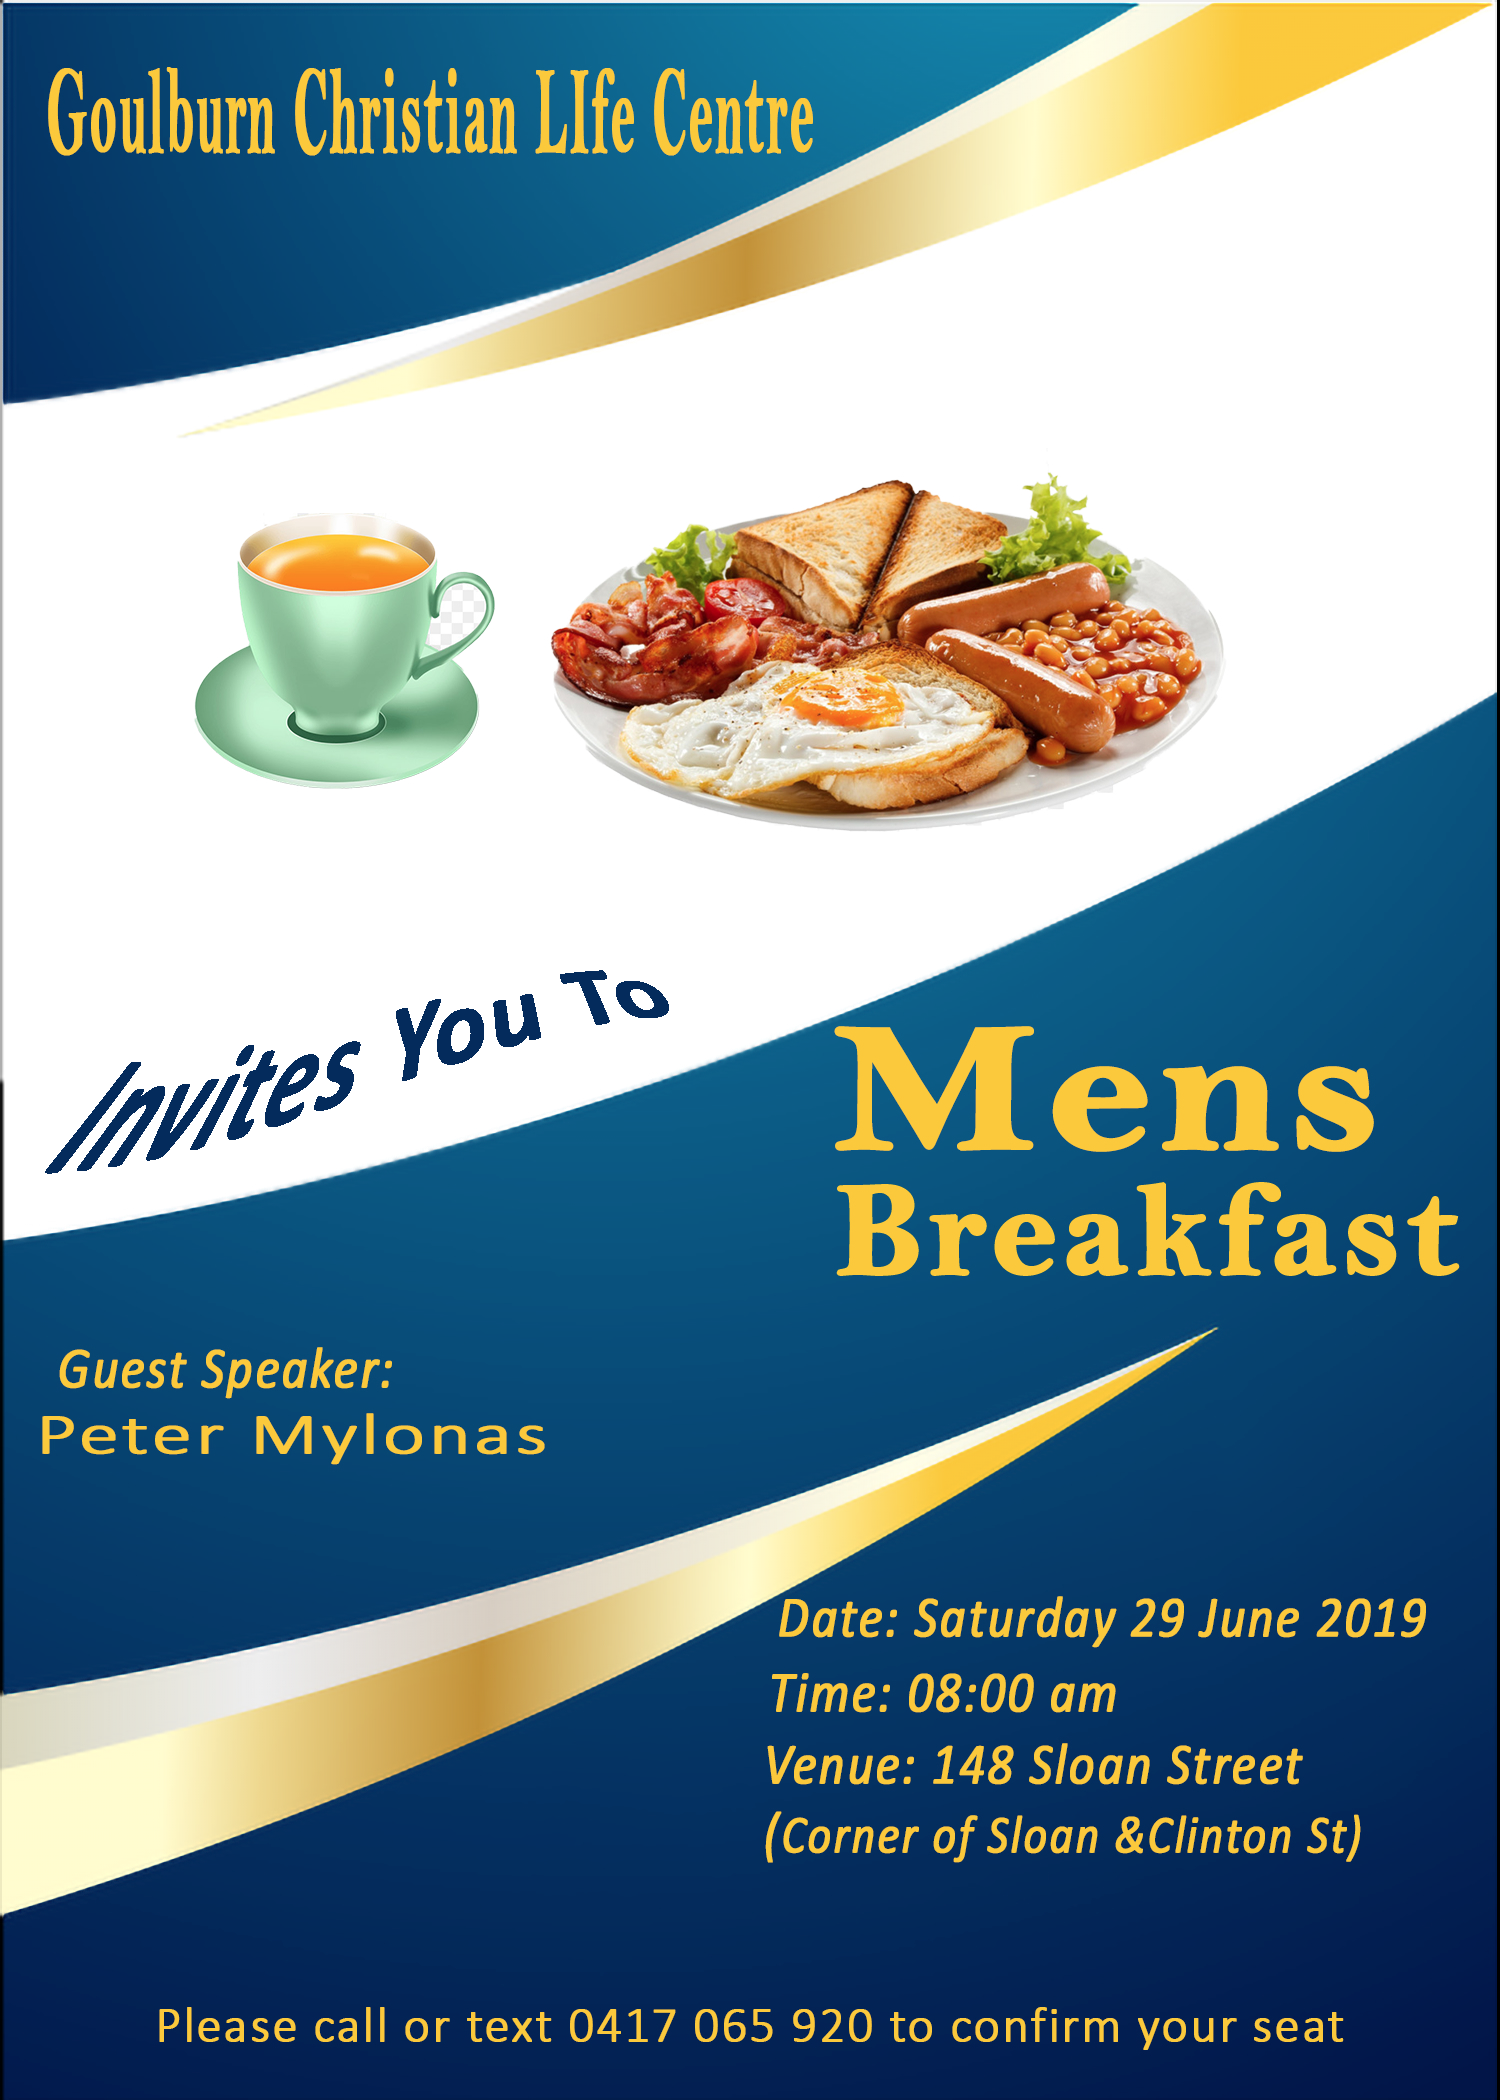 Golburn Christian Life Centre Mens Breakfast flyer.png